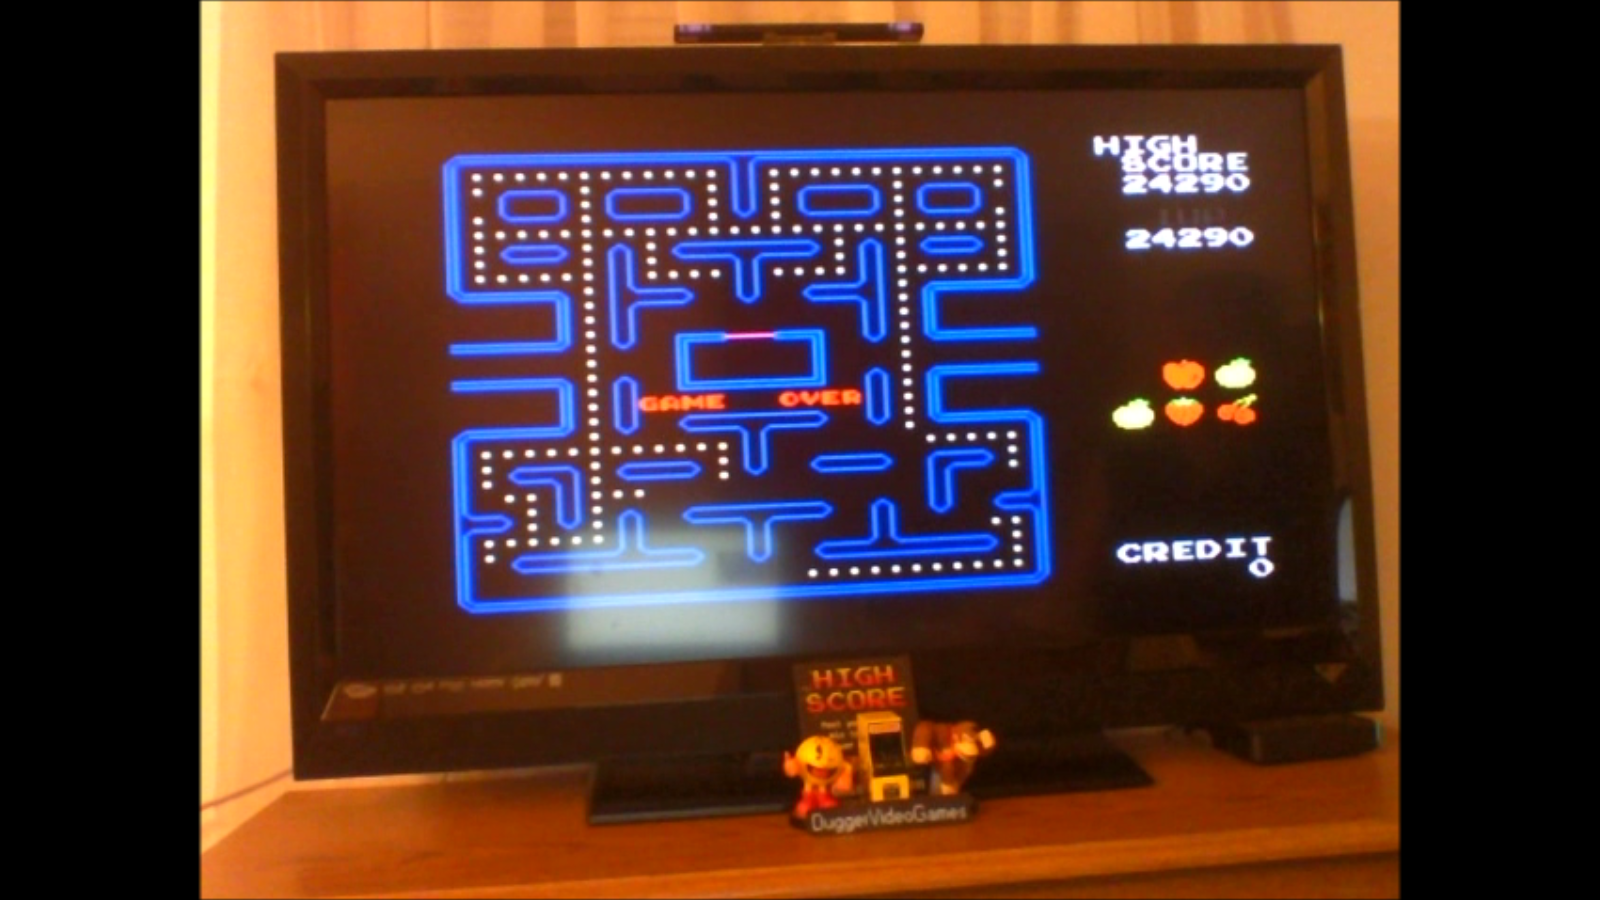 DuggerVideoGames: Pac-Man Collection: Pac-Man [Hard] (Colecovision Emulated) 24,290 points on 2017-02-11 01:08:11